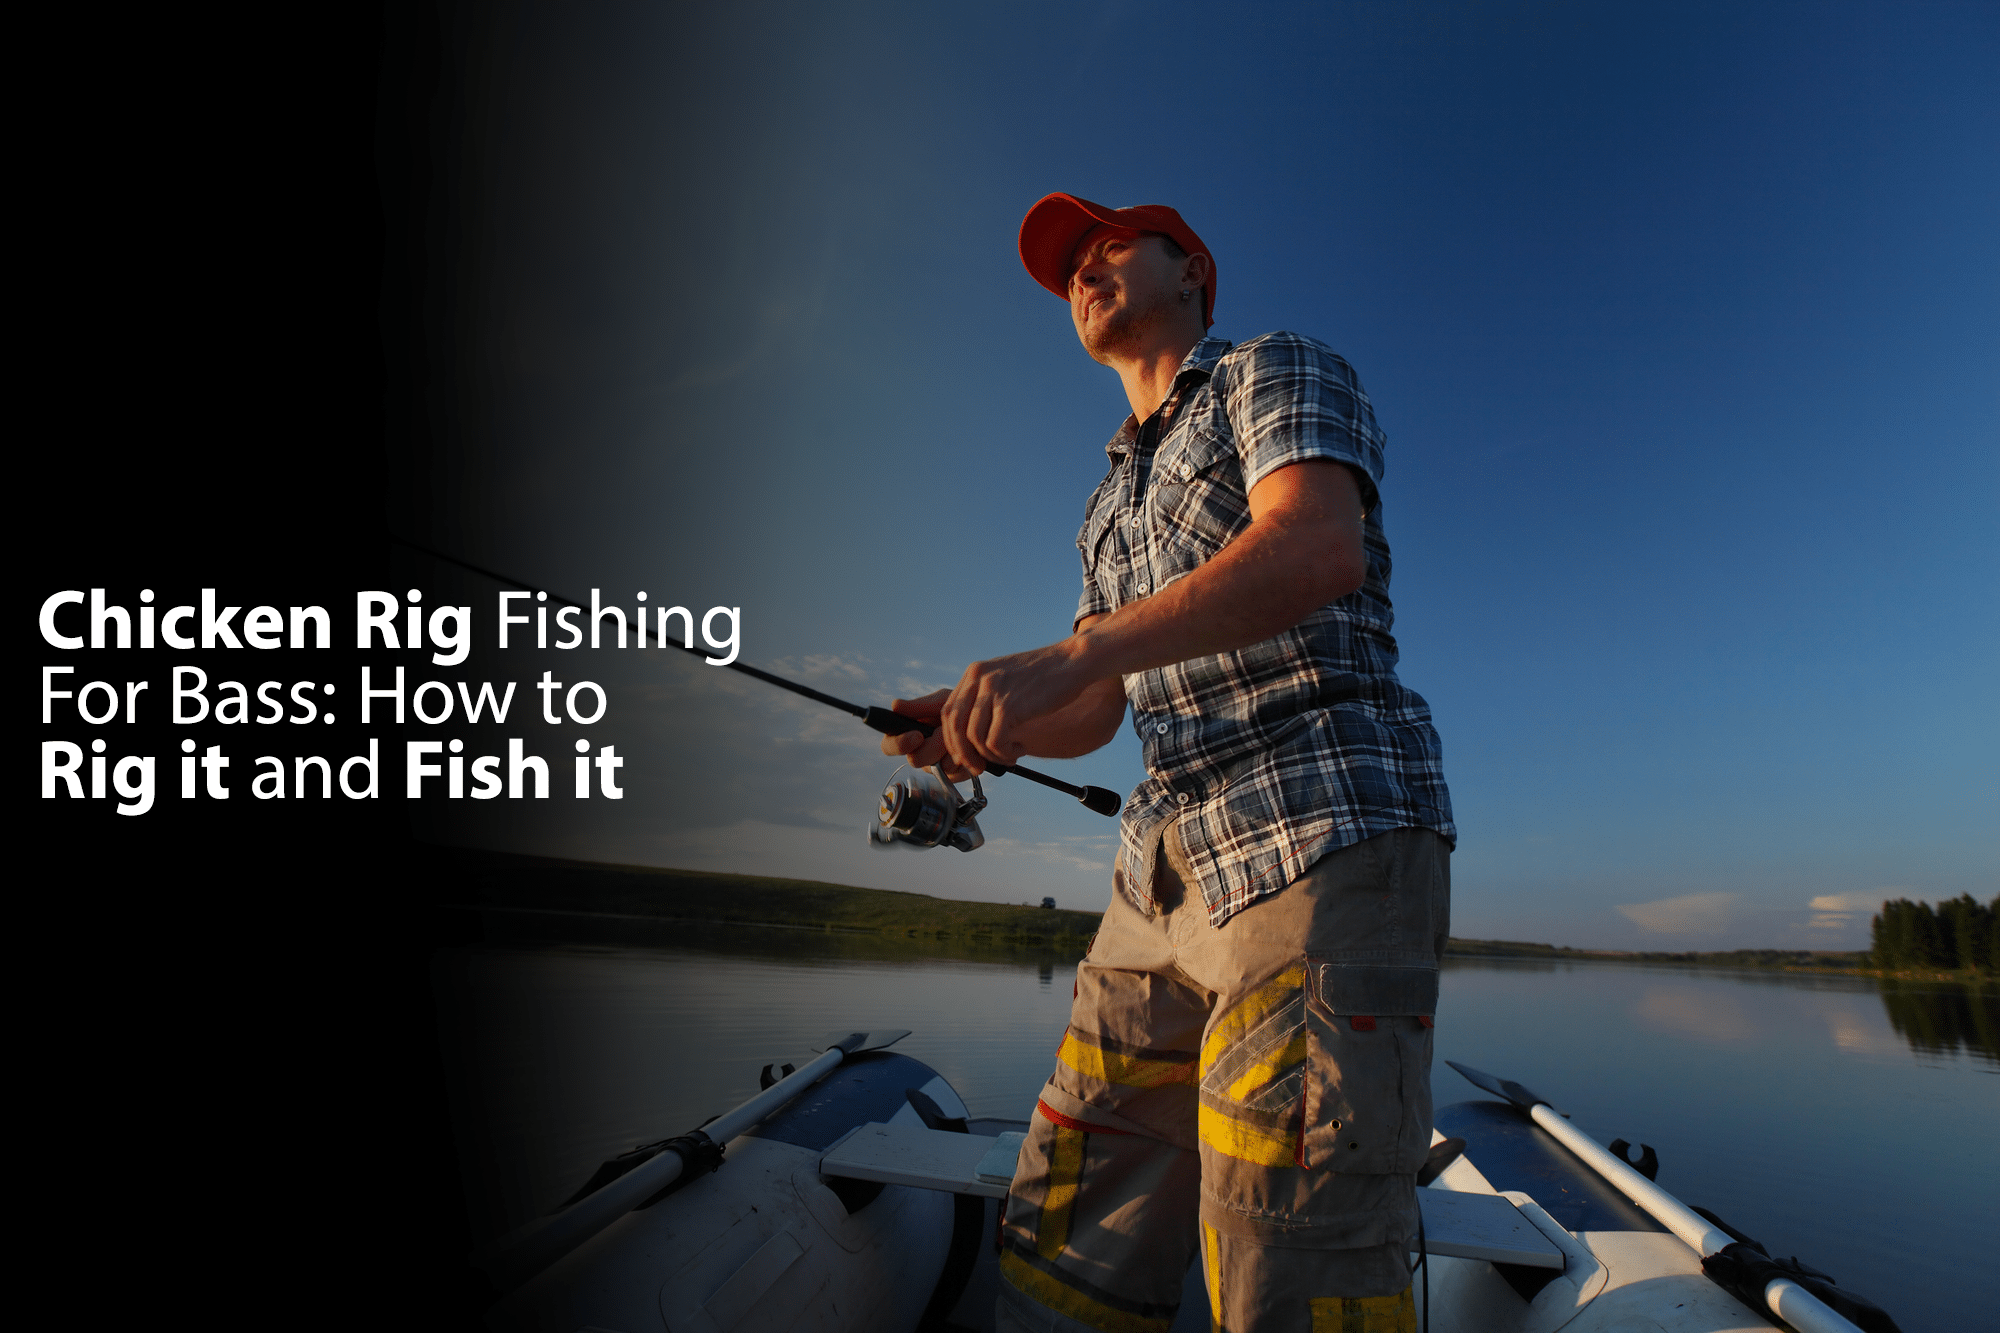 Chicken Rig Fishing For Bass: How to Rig it and Fish it